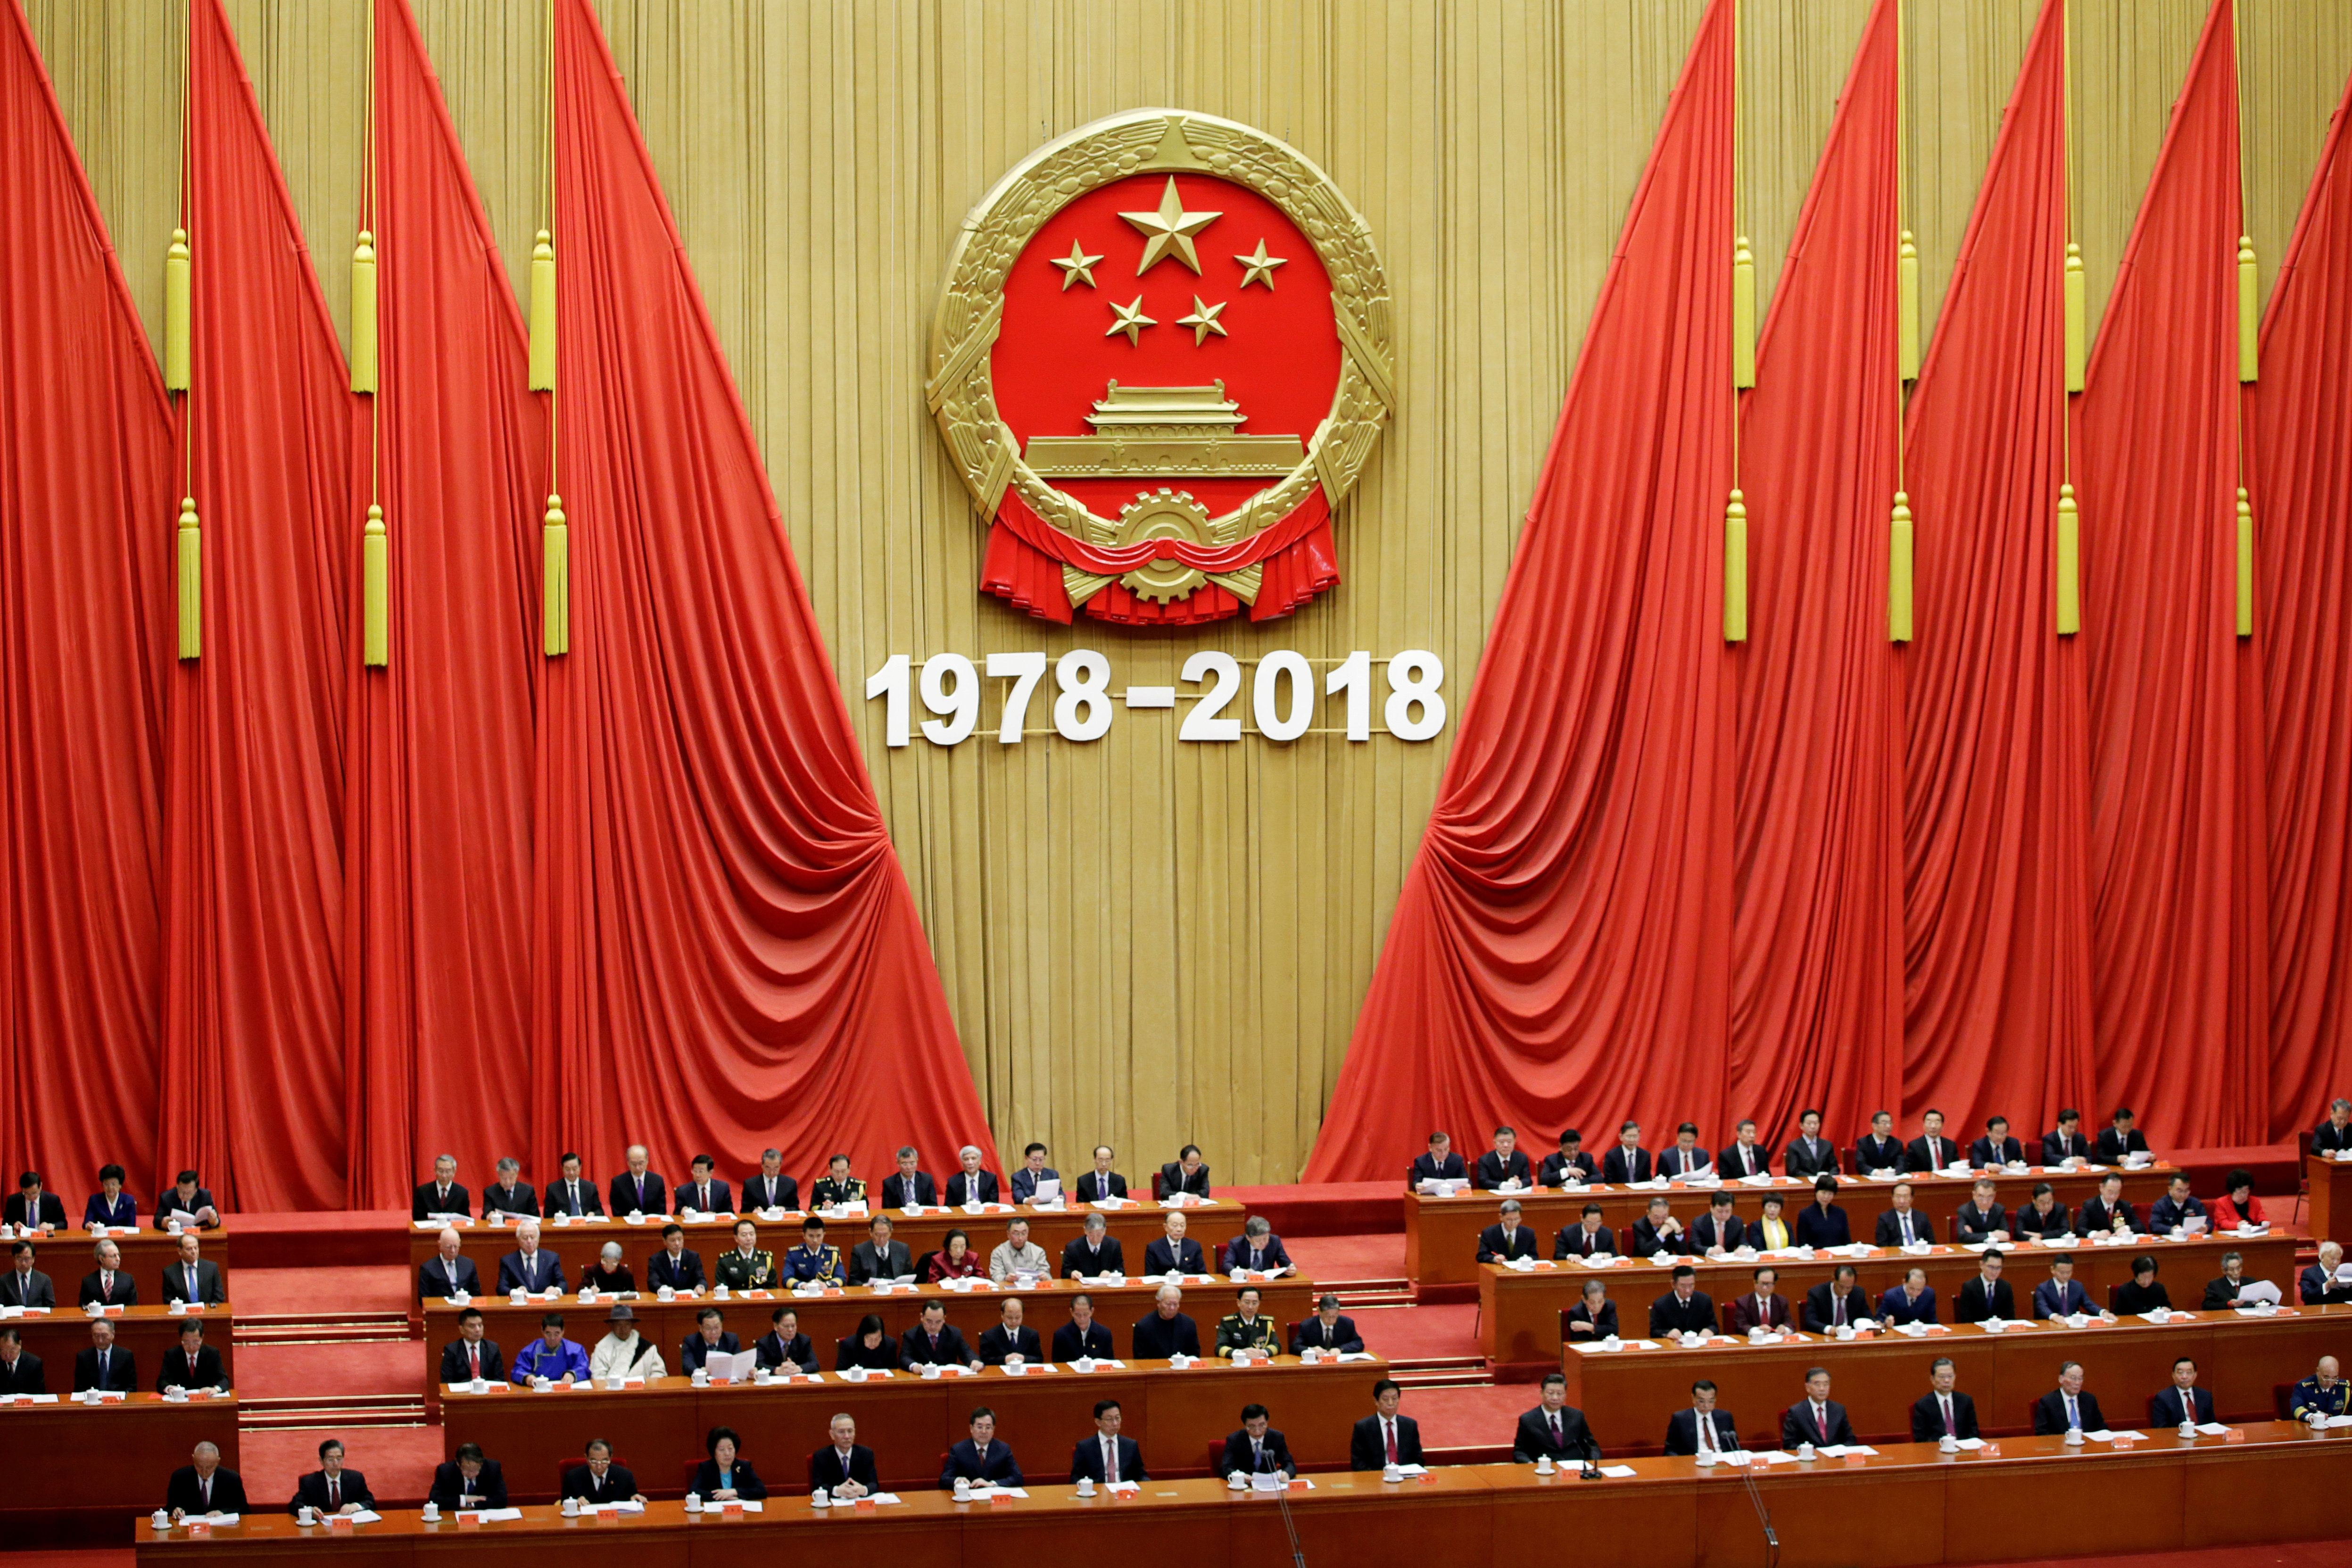 China: Reforms Is So Forty Years Ago